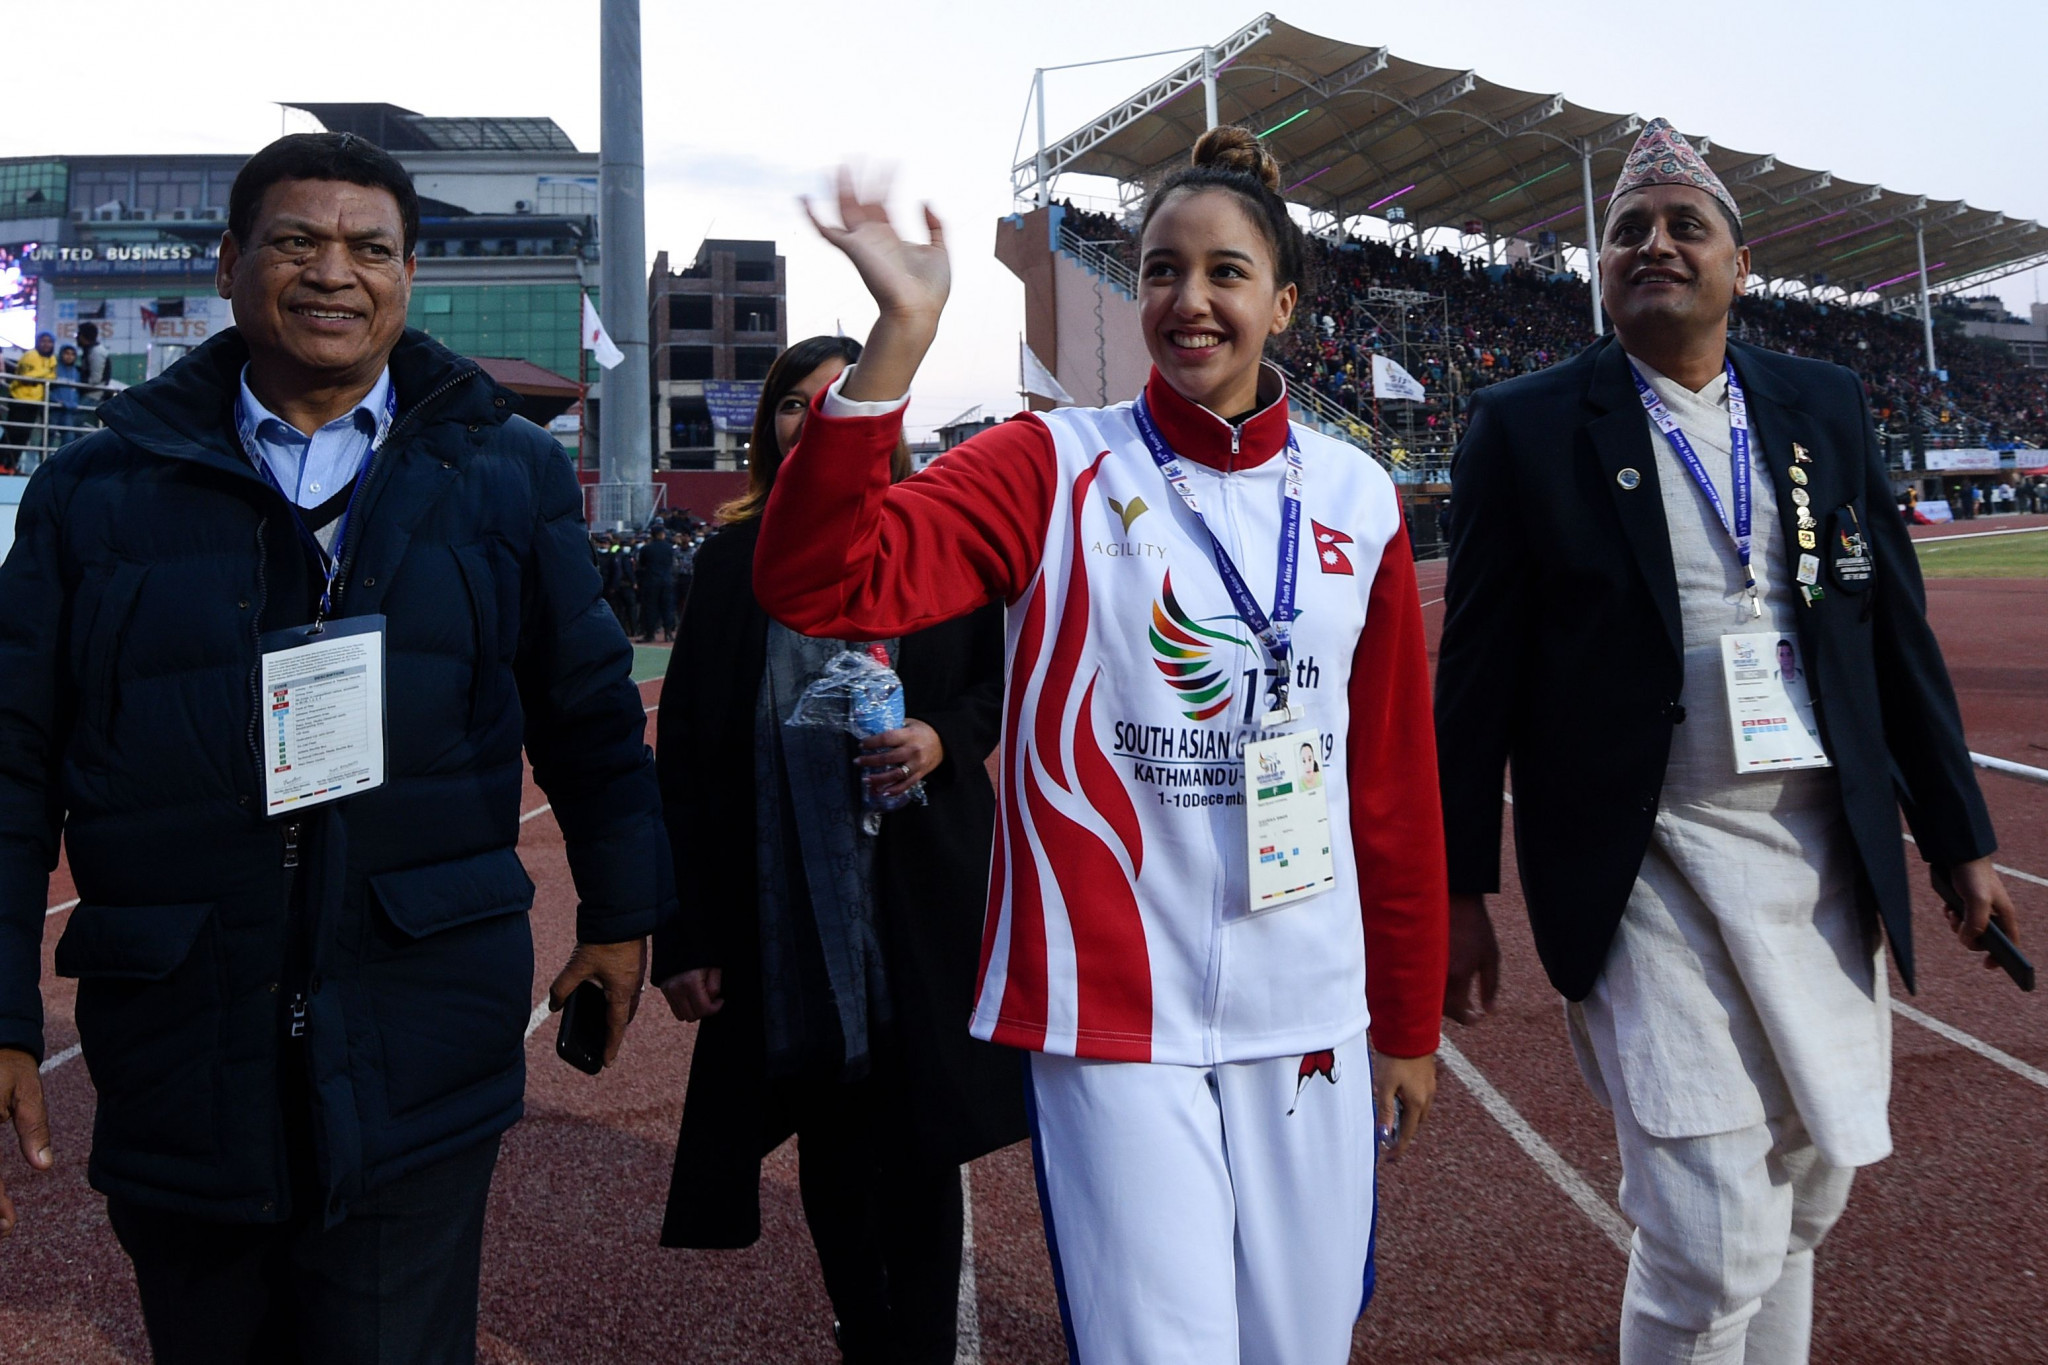 Gaurika Singh won four gold medals at the 2019 Southeast Asian Games ©Getty Images